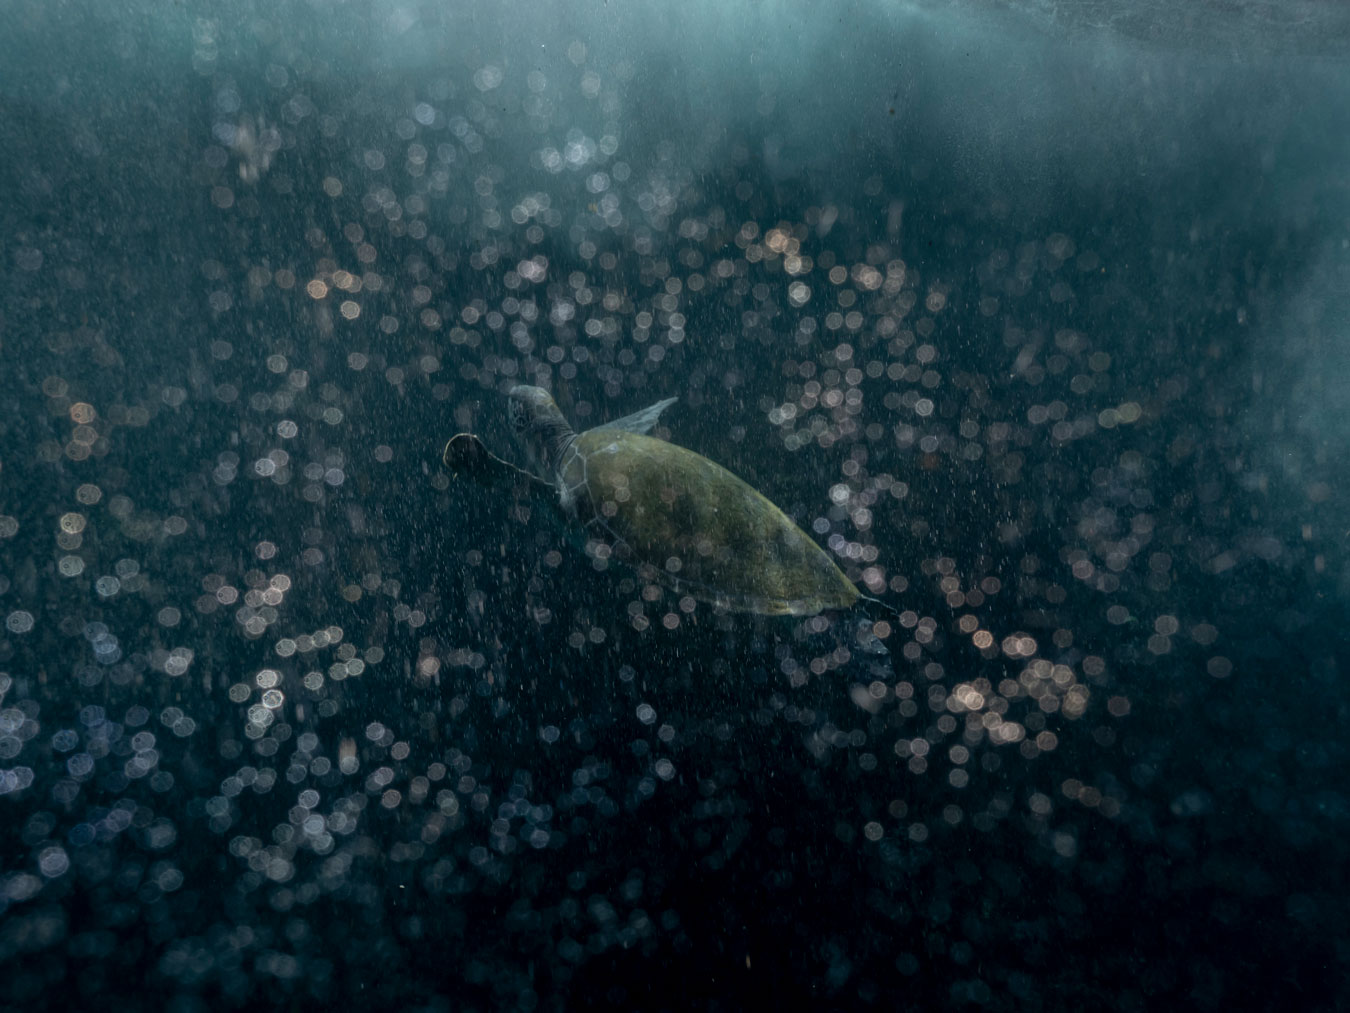 a-mossy-turtle-swimming-underwater-out-of-focus-water-bubbles-sparkle-around